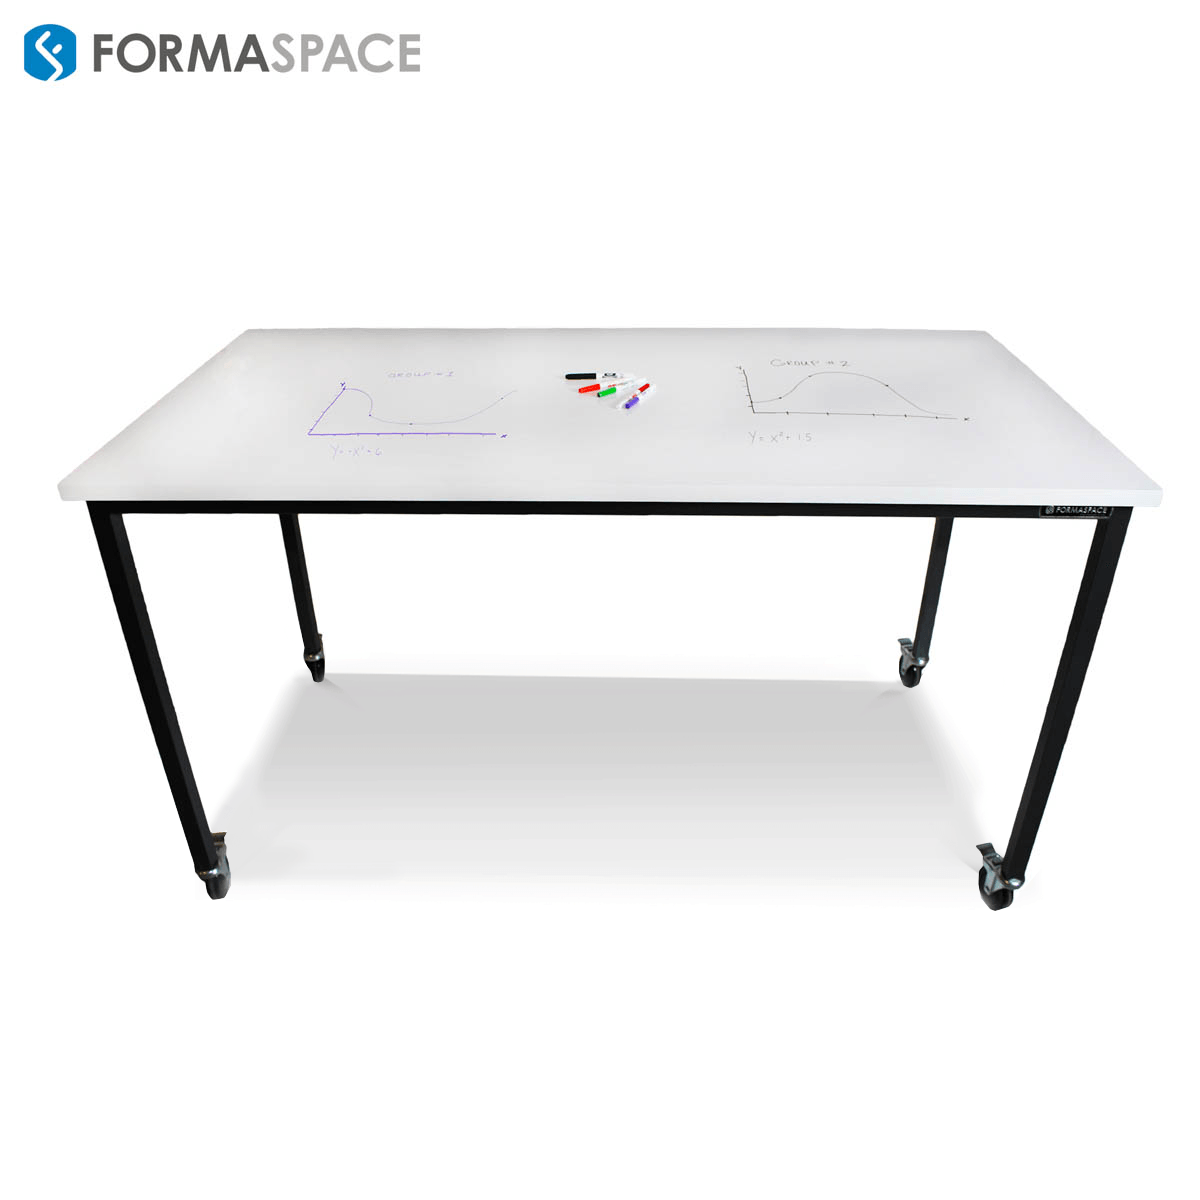 Heavy-duty workbench with casters